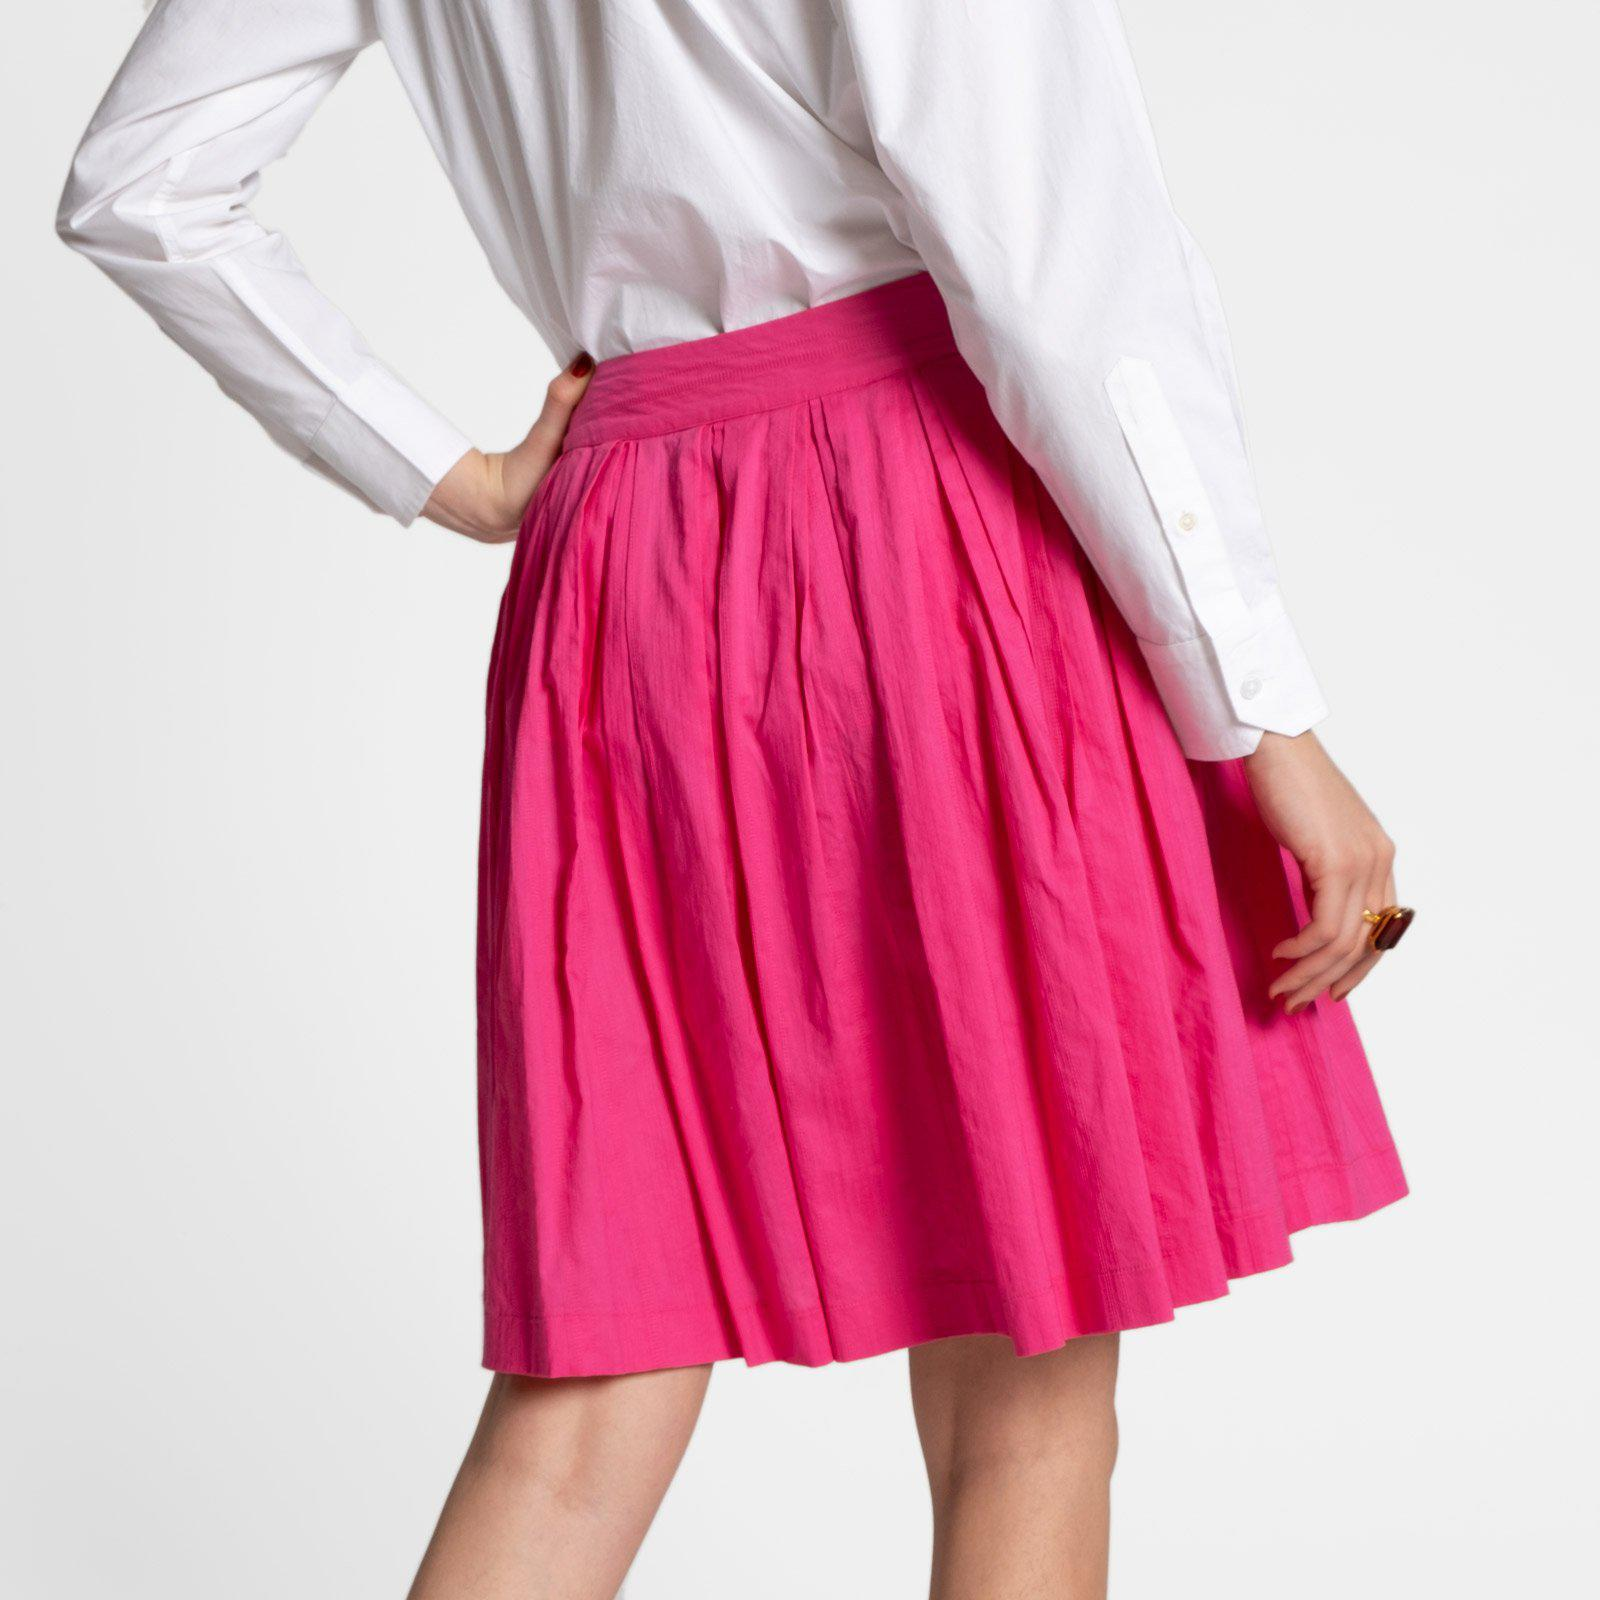 Claire Skirt Pink 3